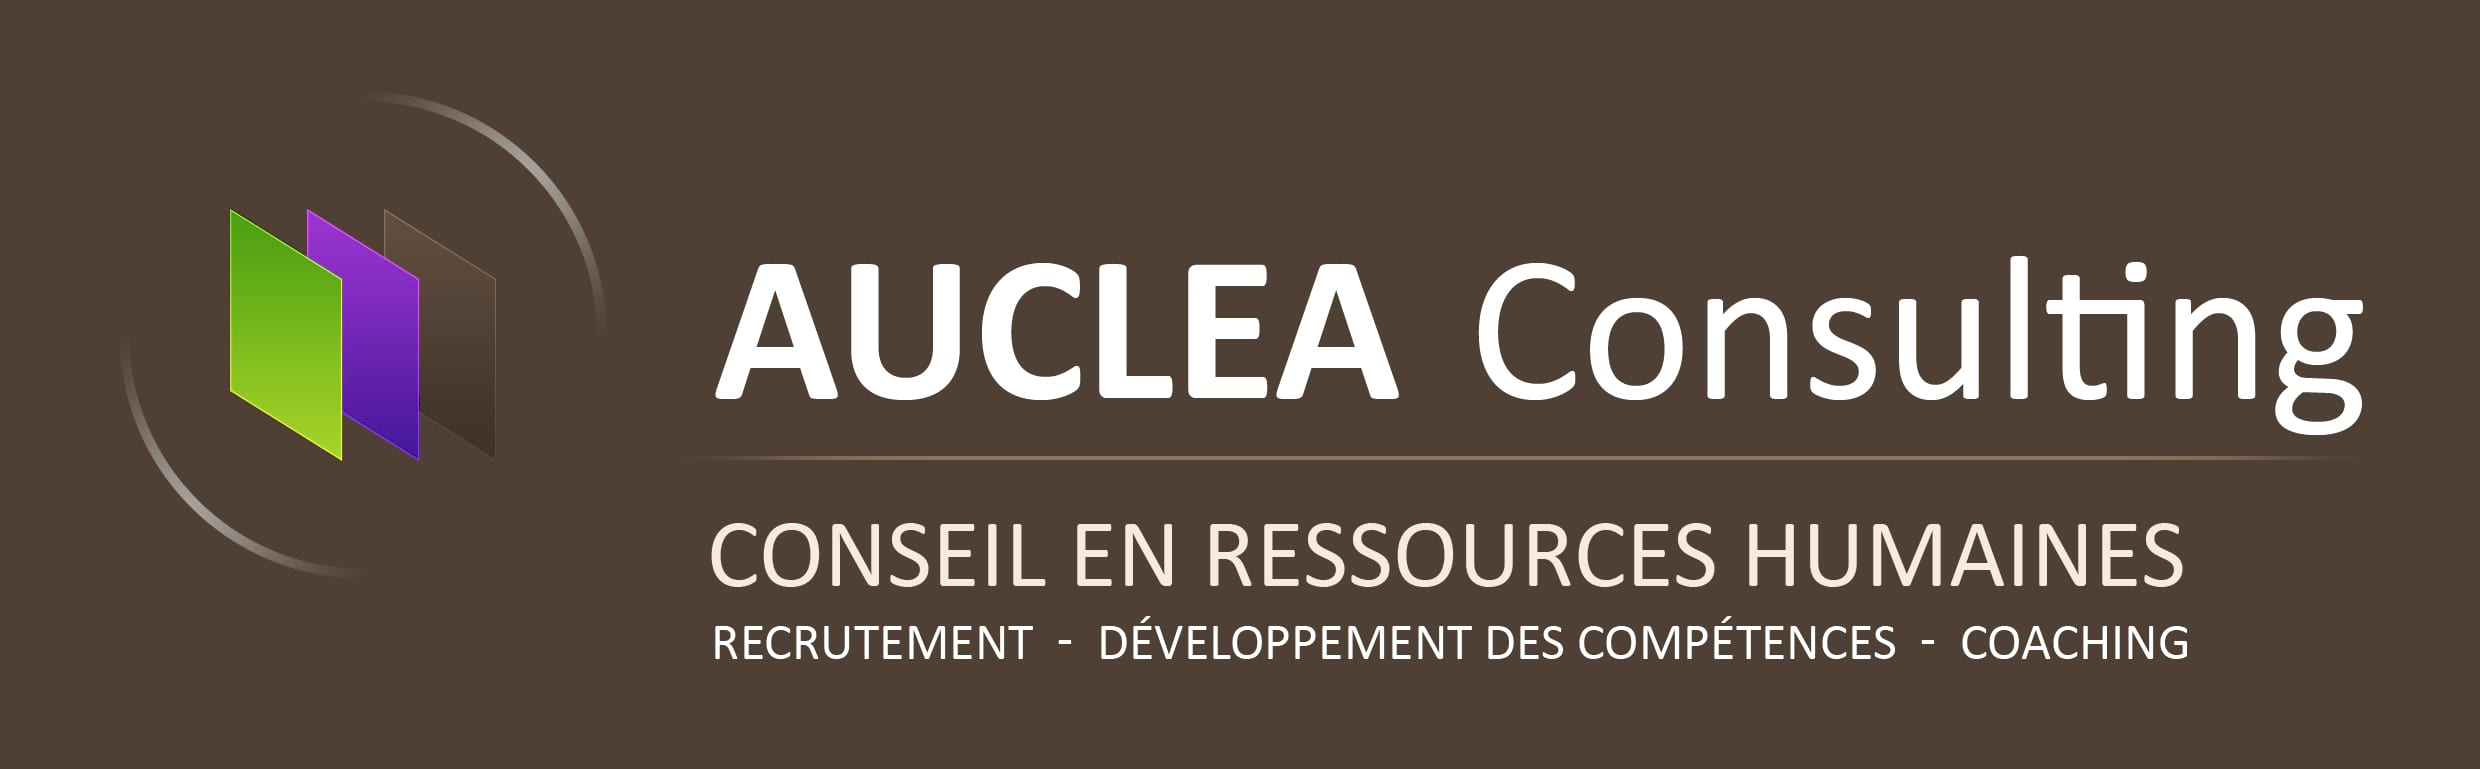 Auclea-consulting-23502